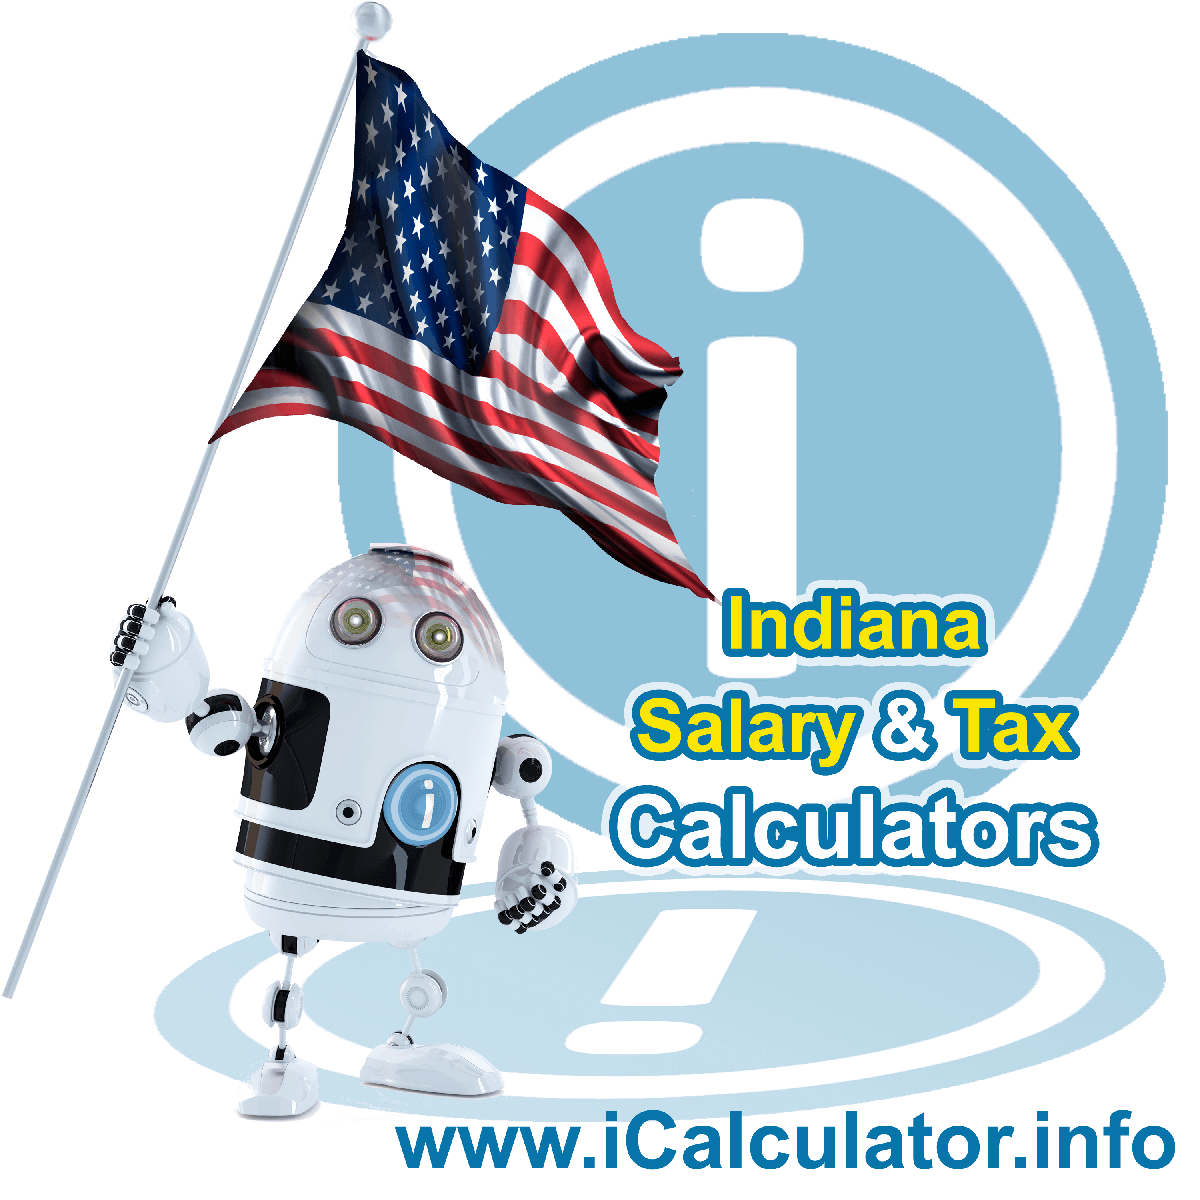 Indiana Salary Calculator 2021 | iCalculator™ | The Indiana Salary Calculator allows you to quickly calculate your salary after tax including Indiana State Tax, Federal State Tax, Medicare Deductions, Social Security, Capital Gains and other income tax and salary deductions complete with supporting Indiana state tax tables